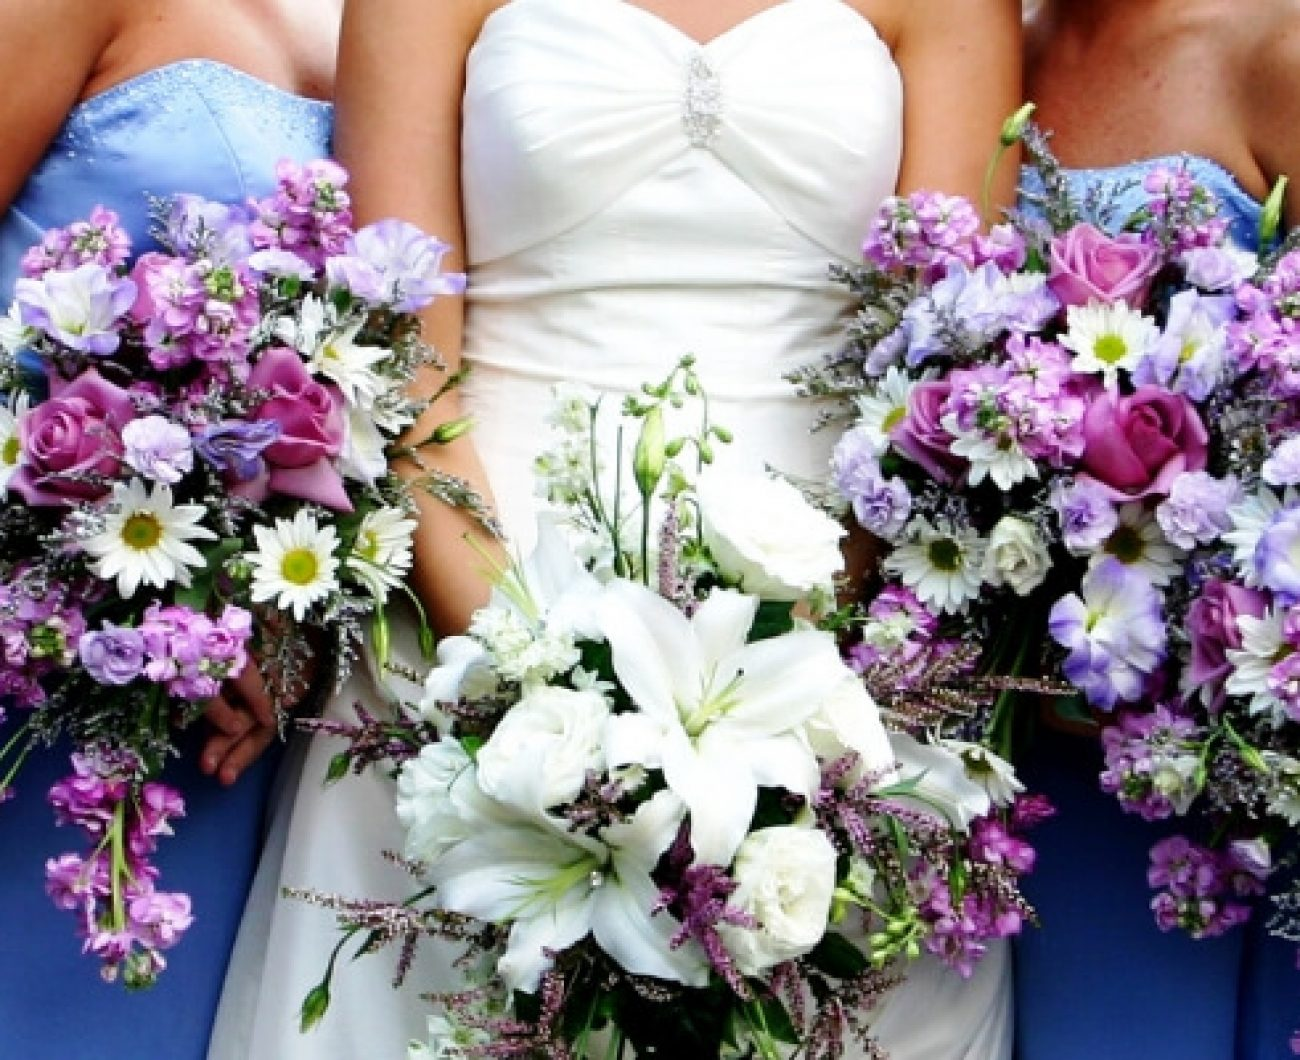 Public Liability Insurance At Weddings